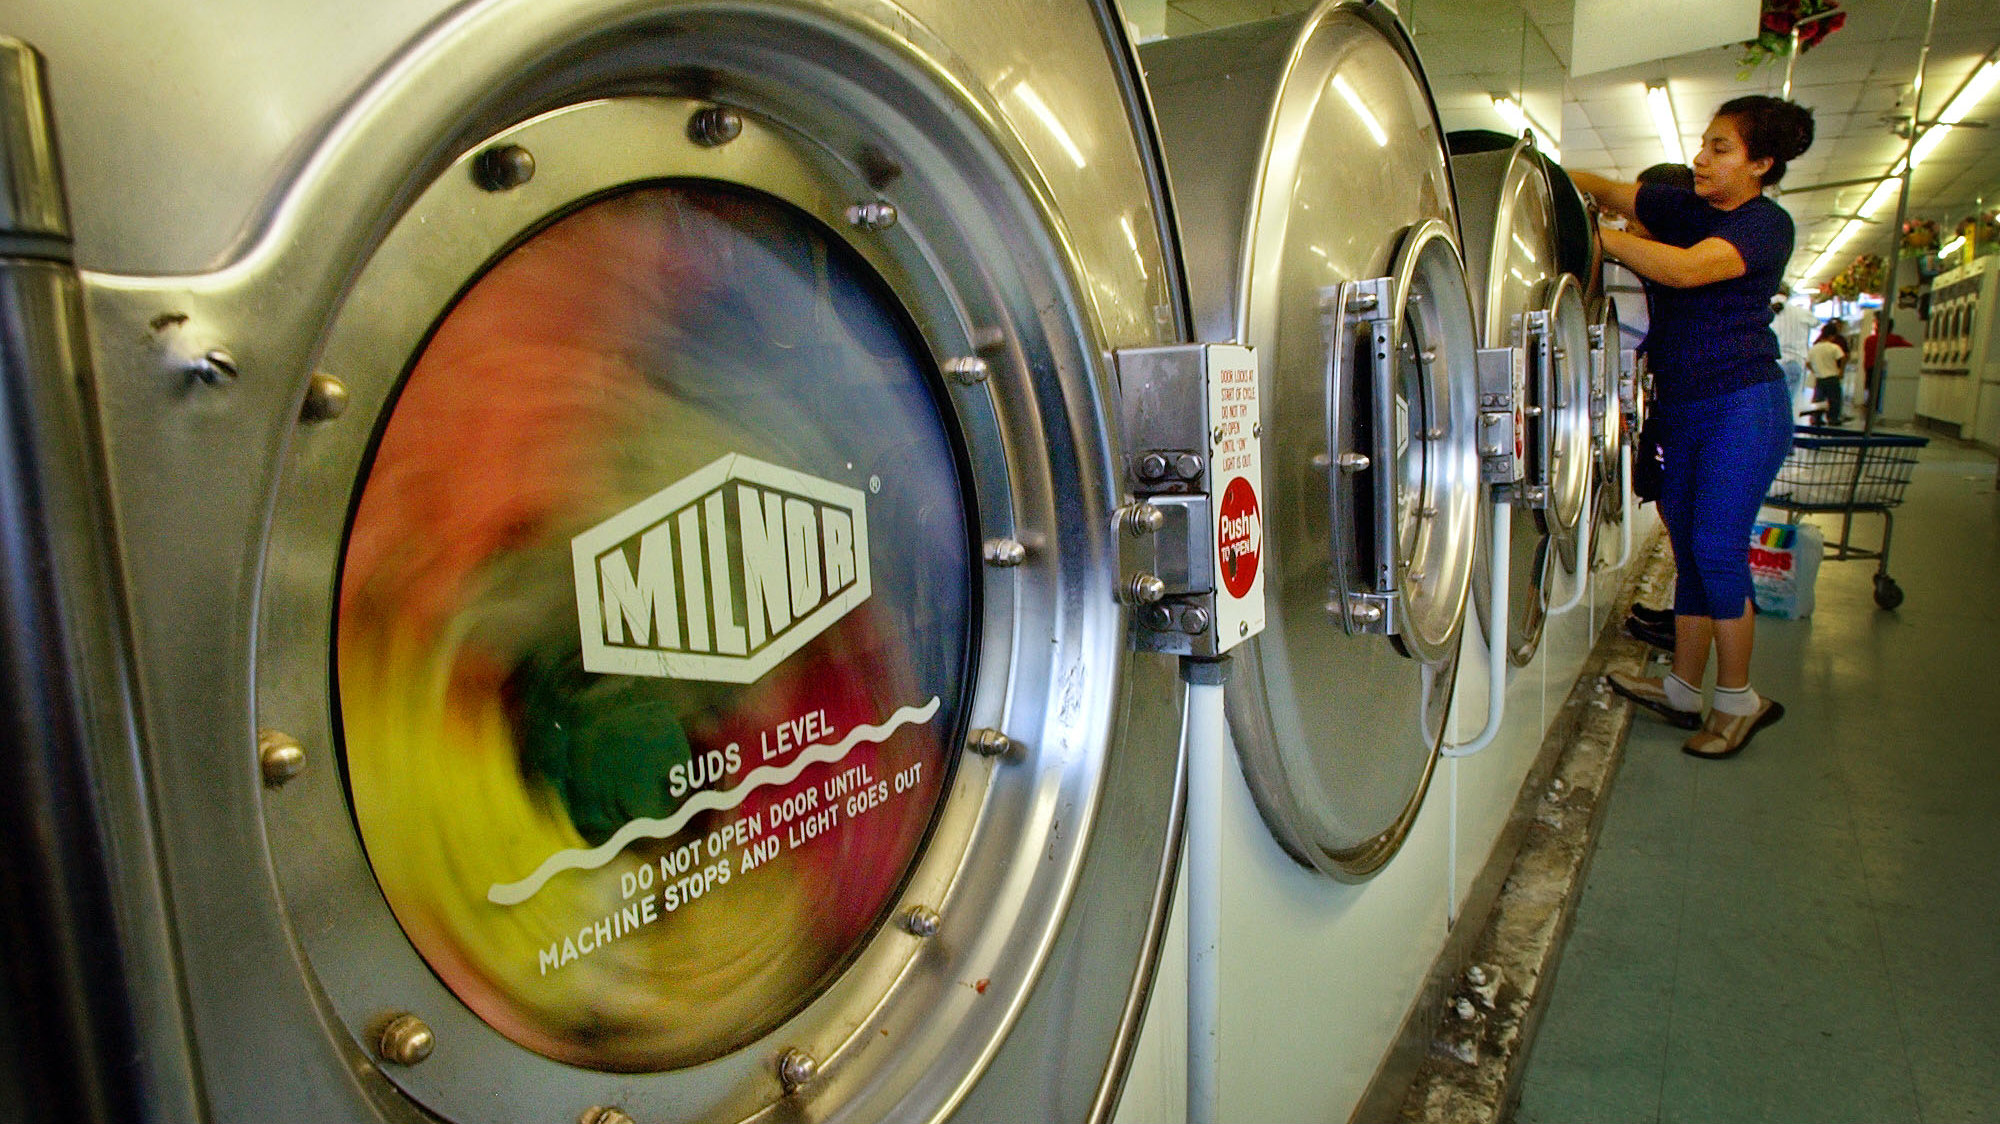 An unidentified woman loads clothes into a washing machine at a coin-operated laundry in Los Angeles' Echo Park district, Wednesday, Dec. 10, 2003.